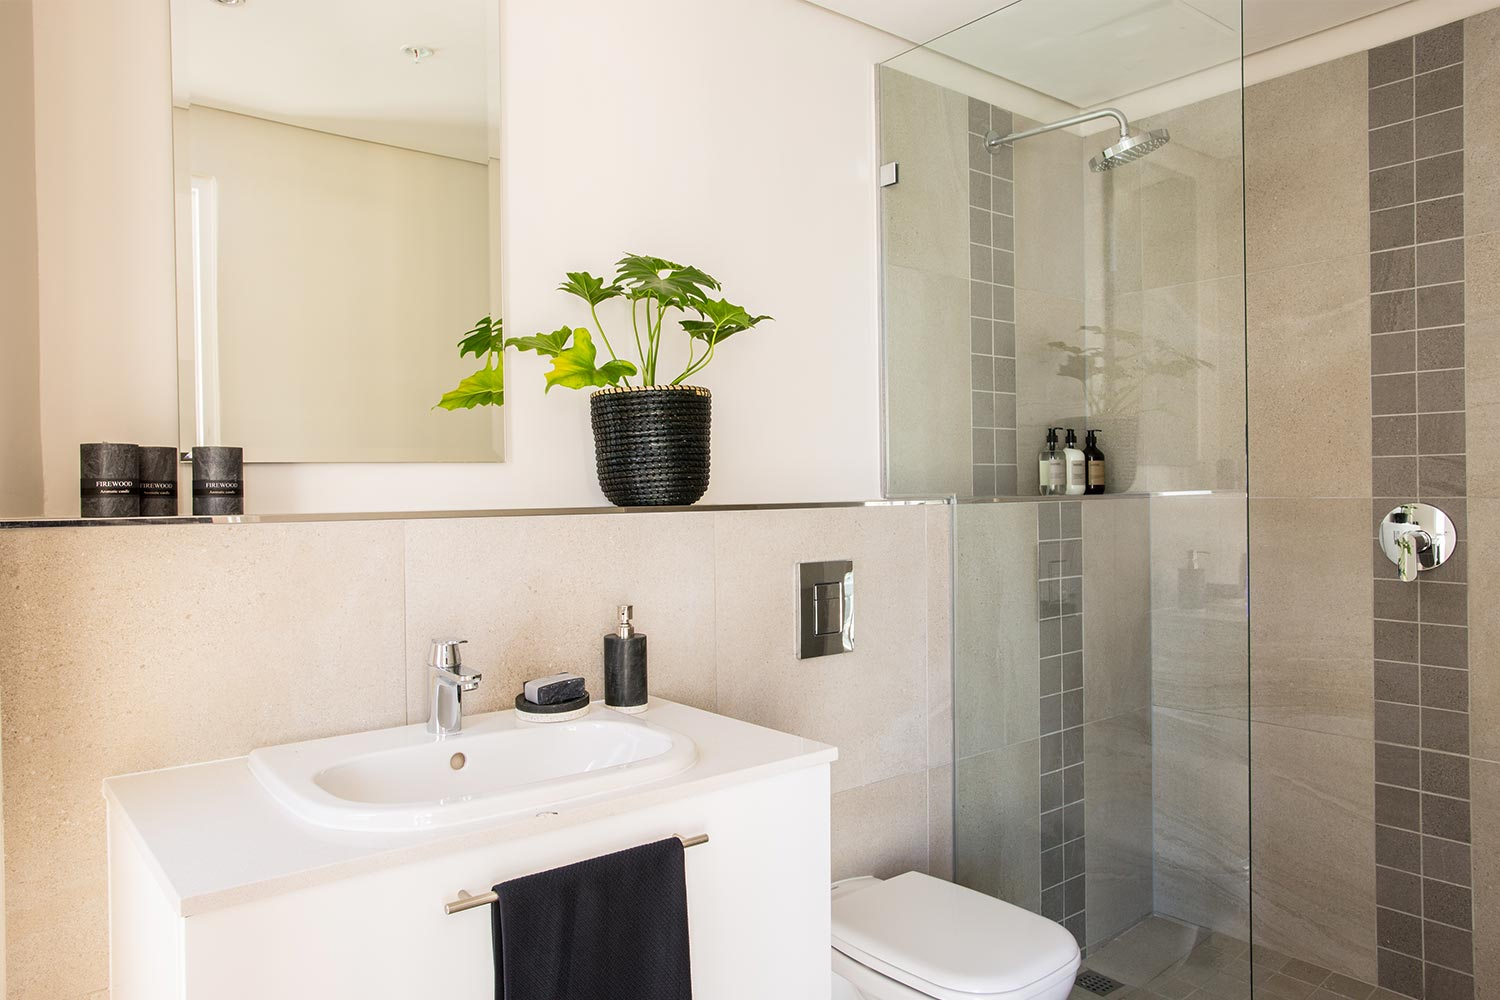 World-class finishings in our bathrooms